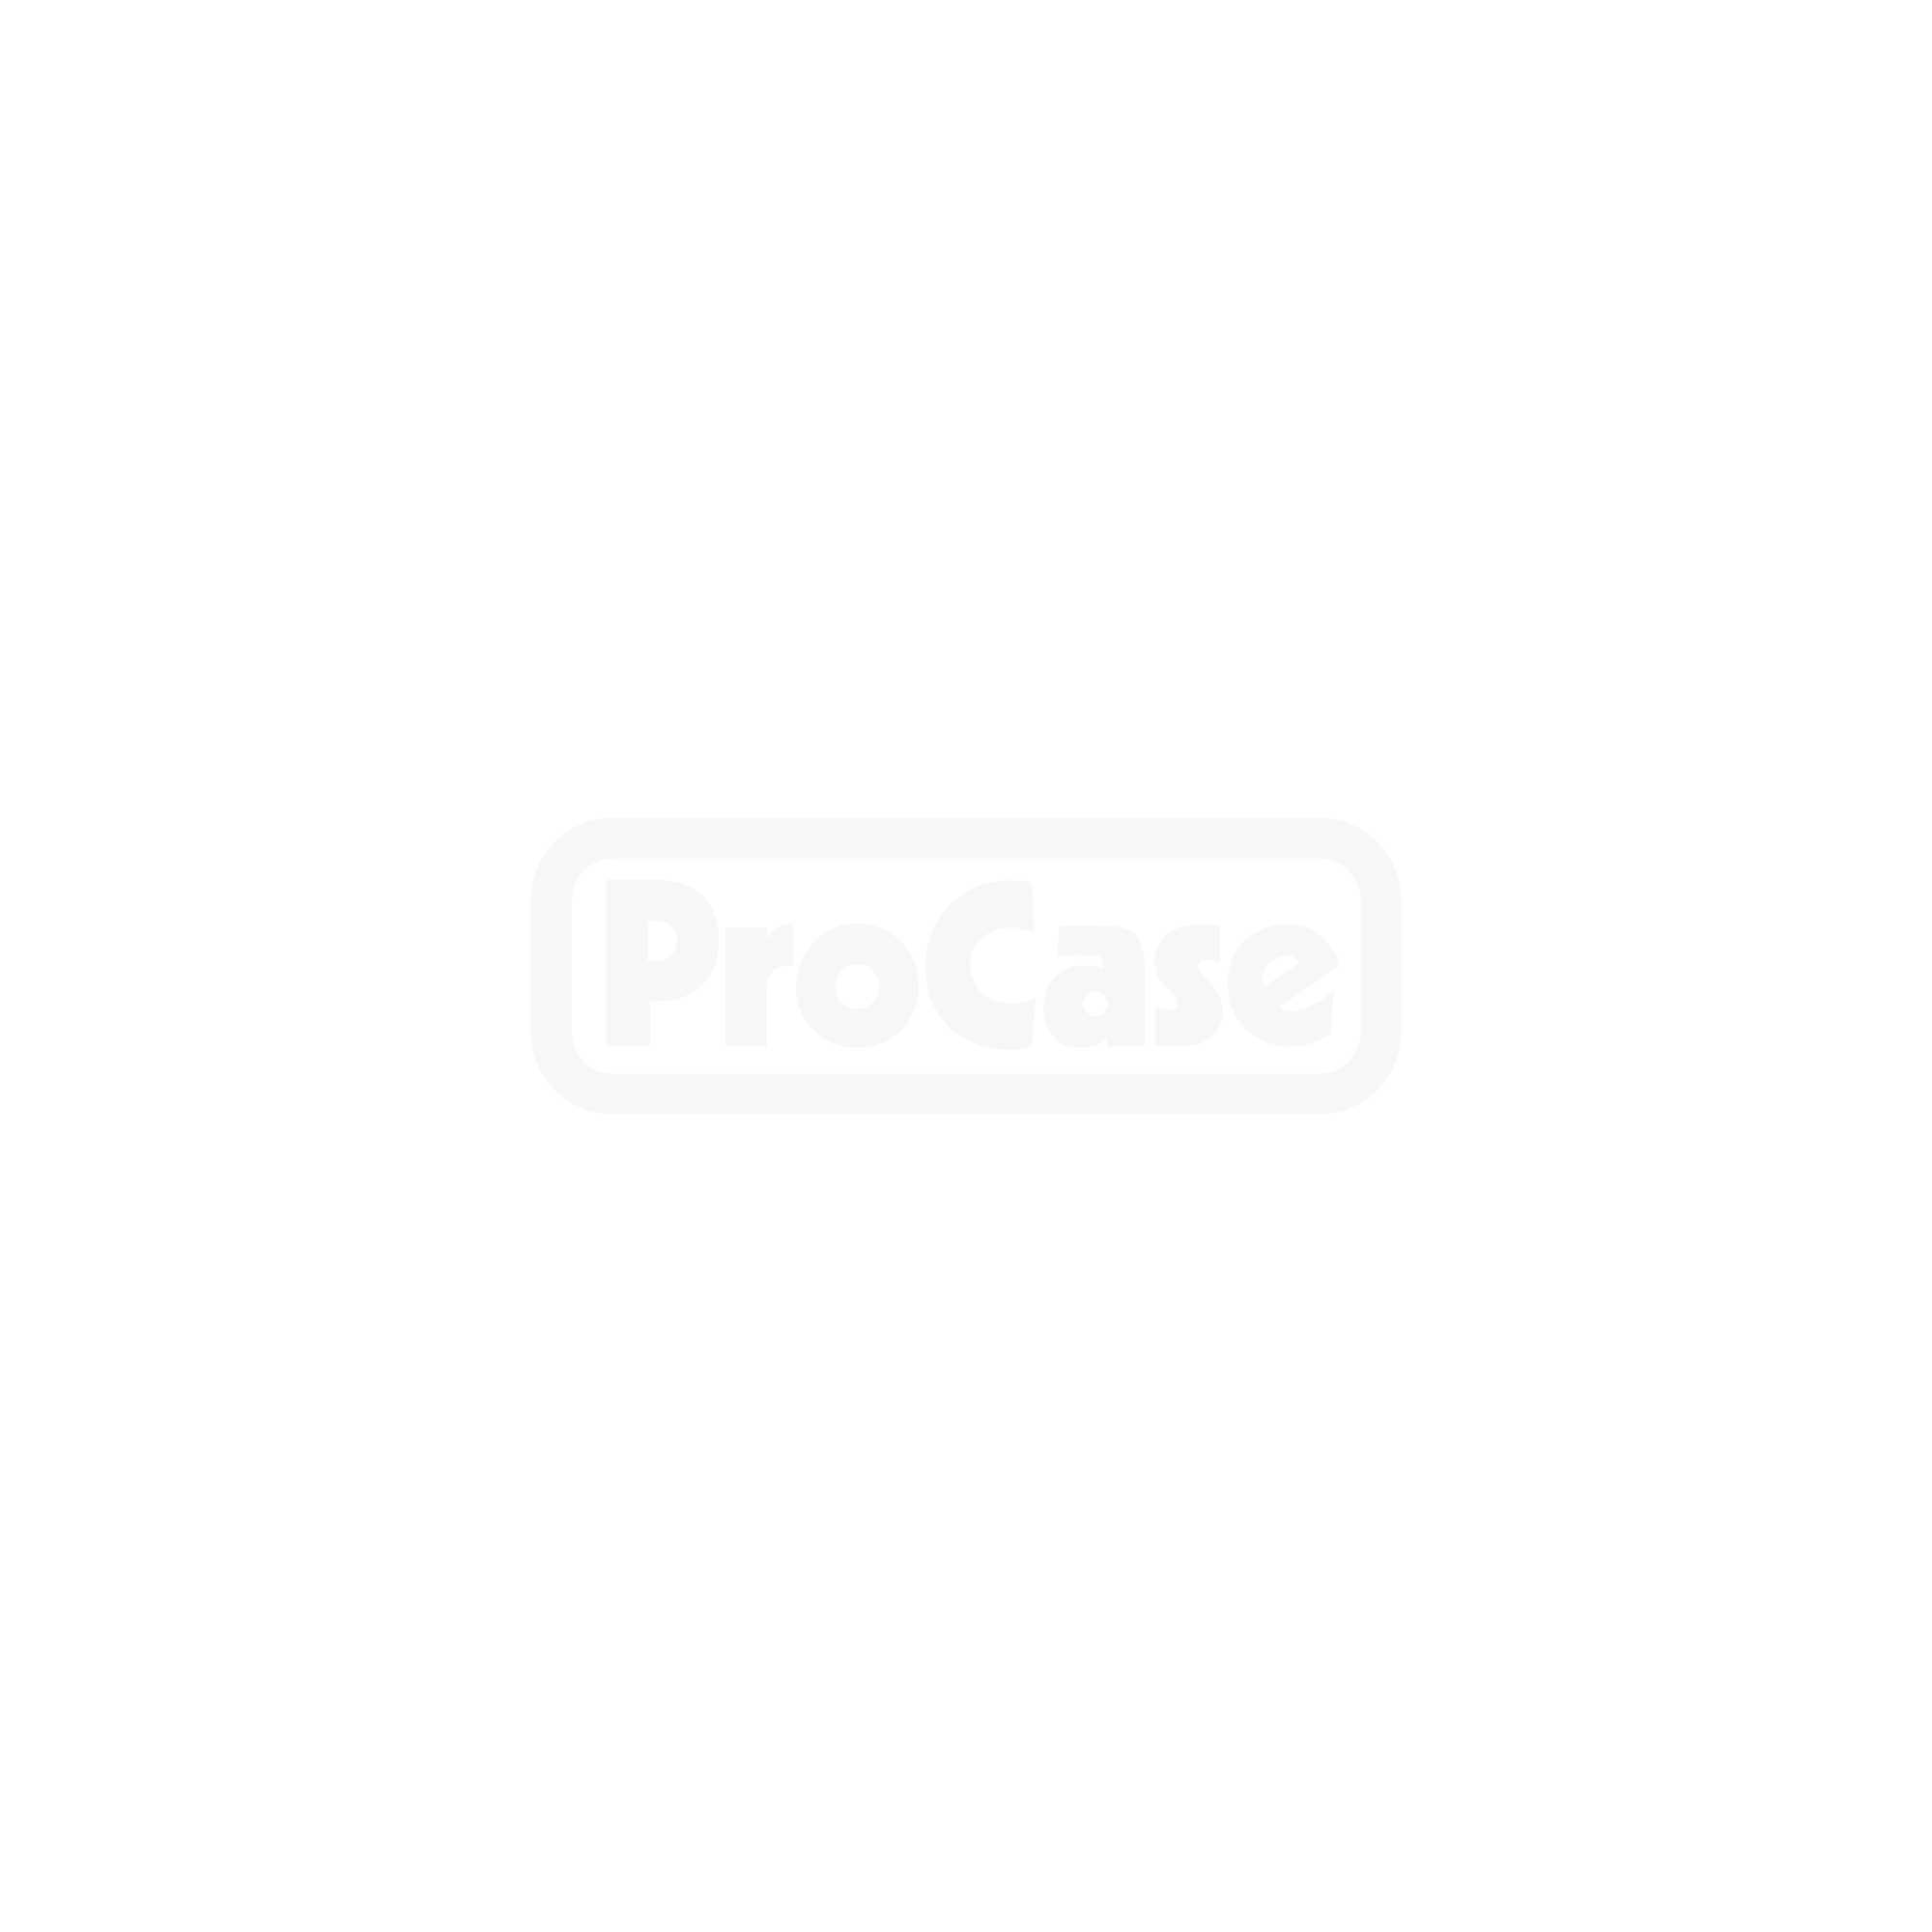 Flightcase für 6 Tensator Tensabarrier Advance Absperrsäulen